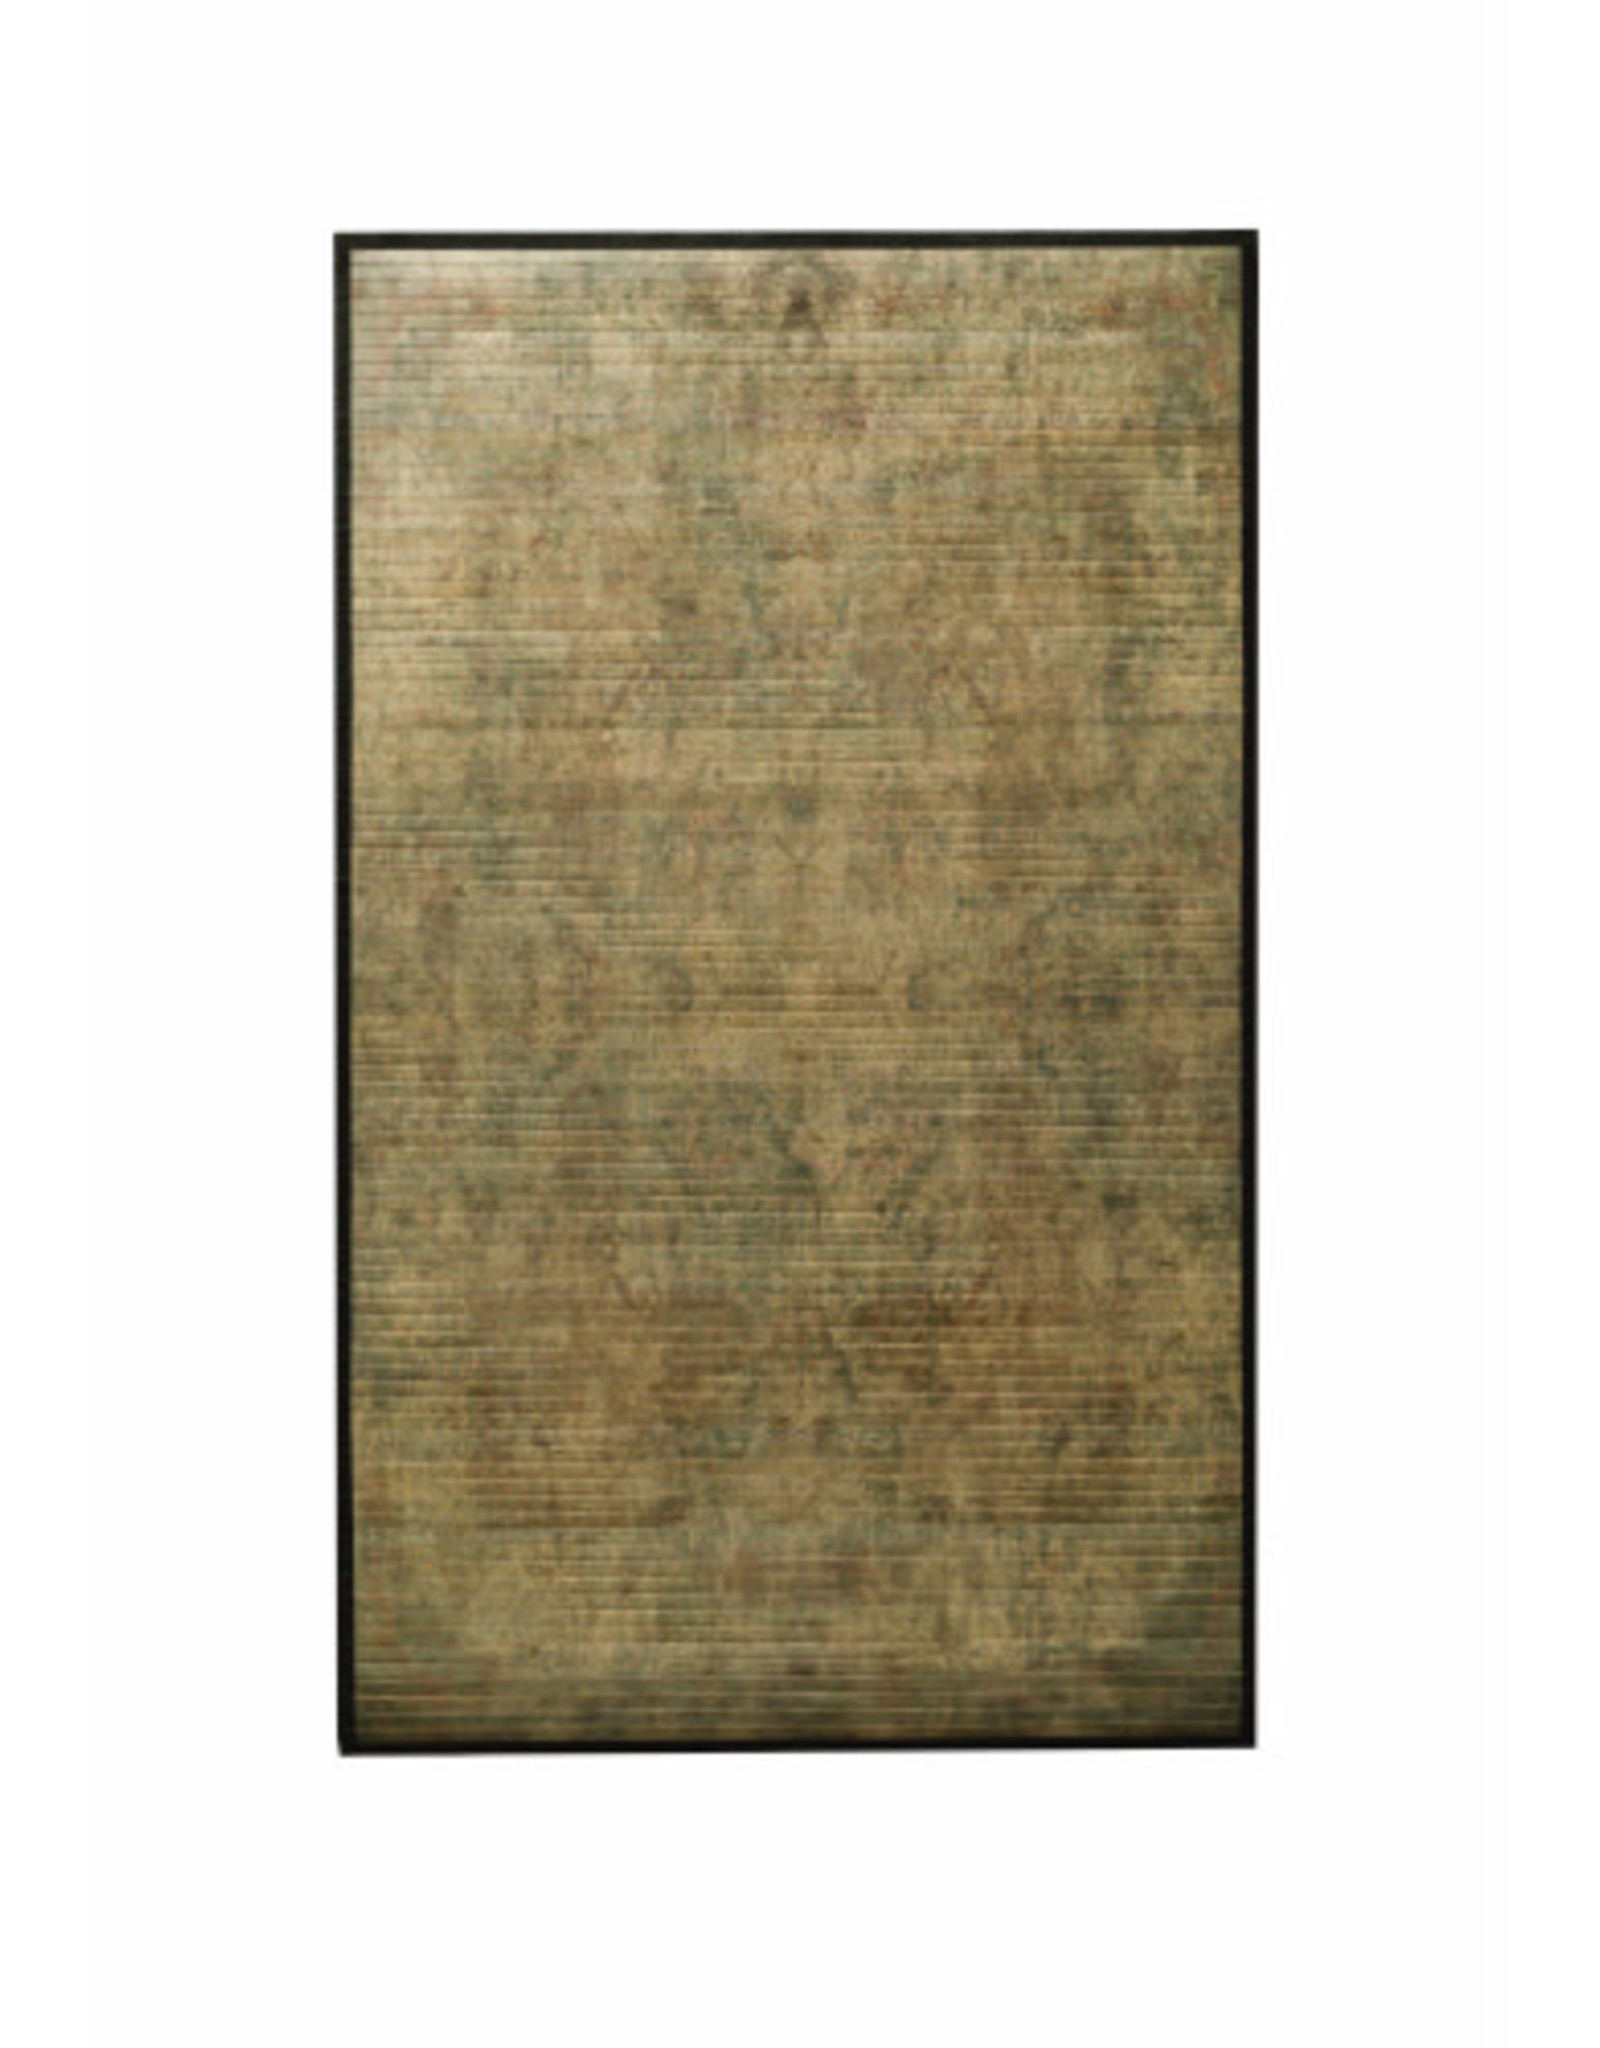 Bamboo Mat with Tapestry Pattern